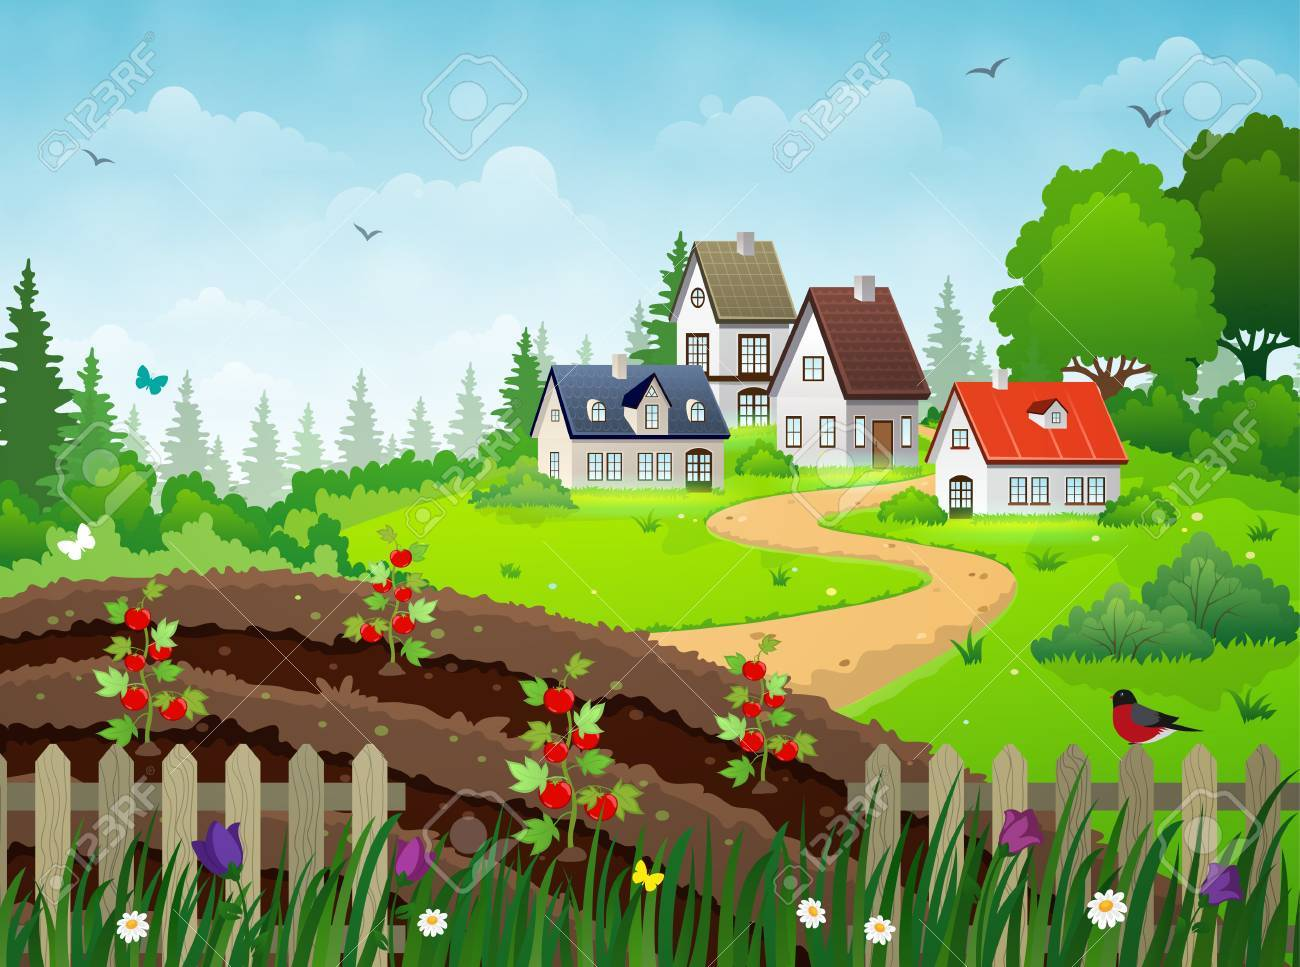 Countryside Village Landscape With Rural Houses, Vegetable Garden ...